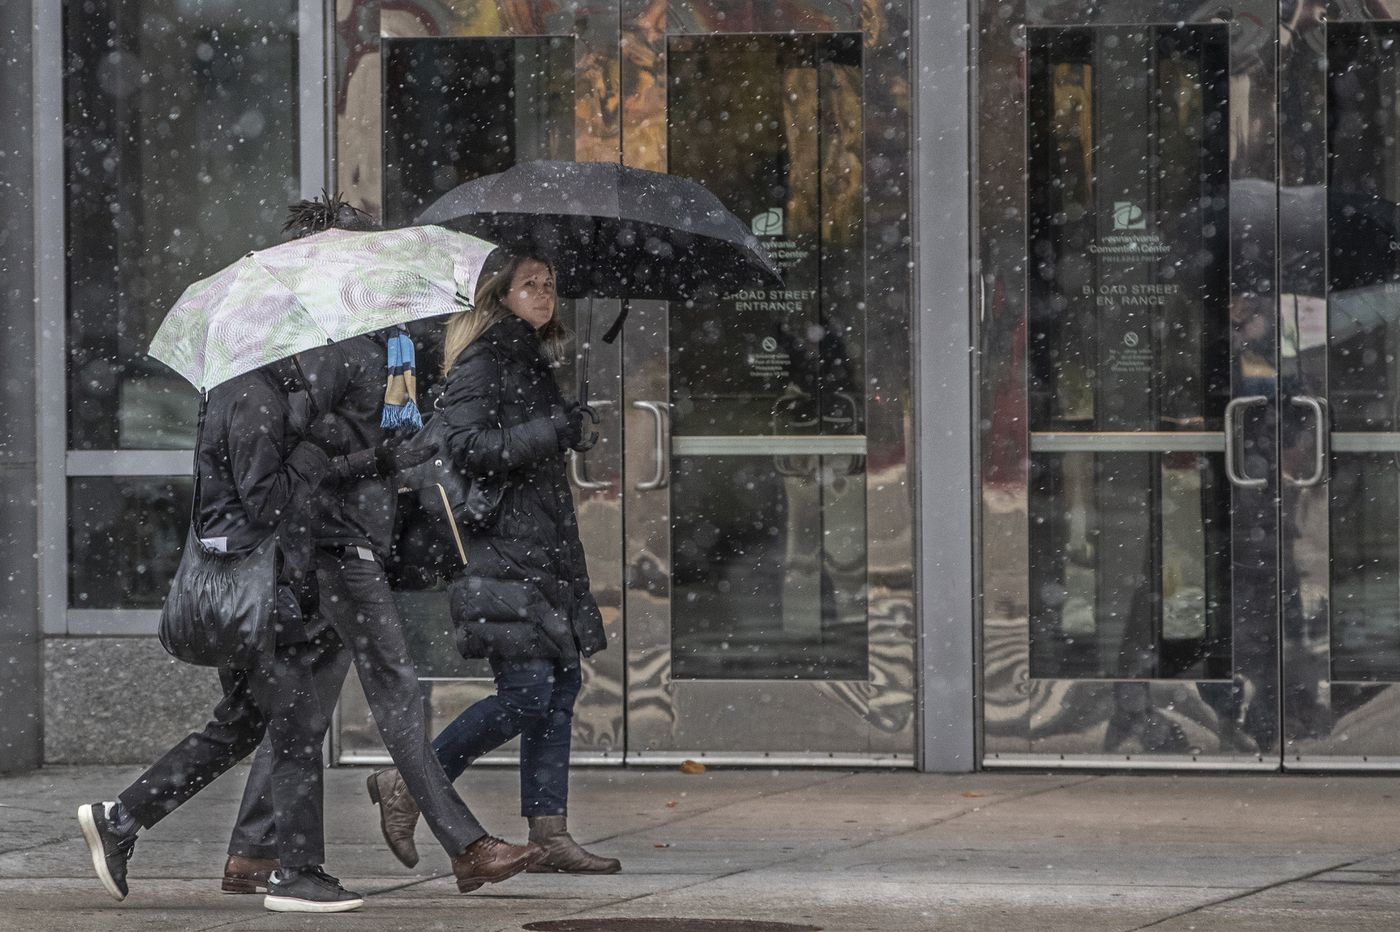 After first snowflakes, record cold, single-digit wind chills expected for Philly area